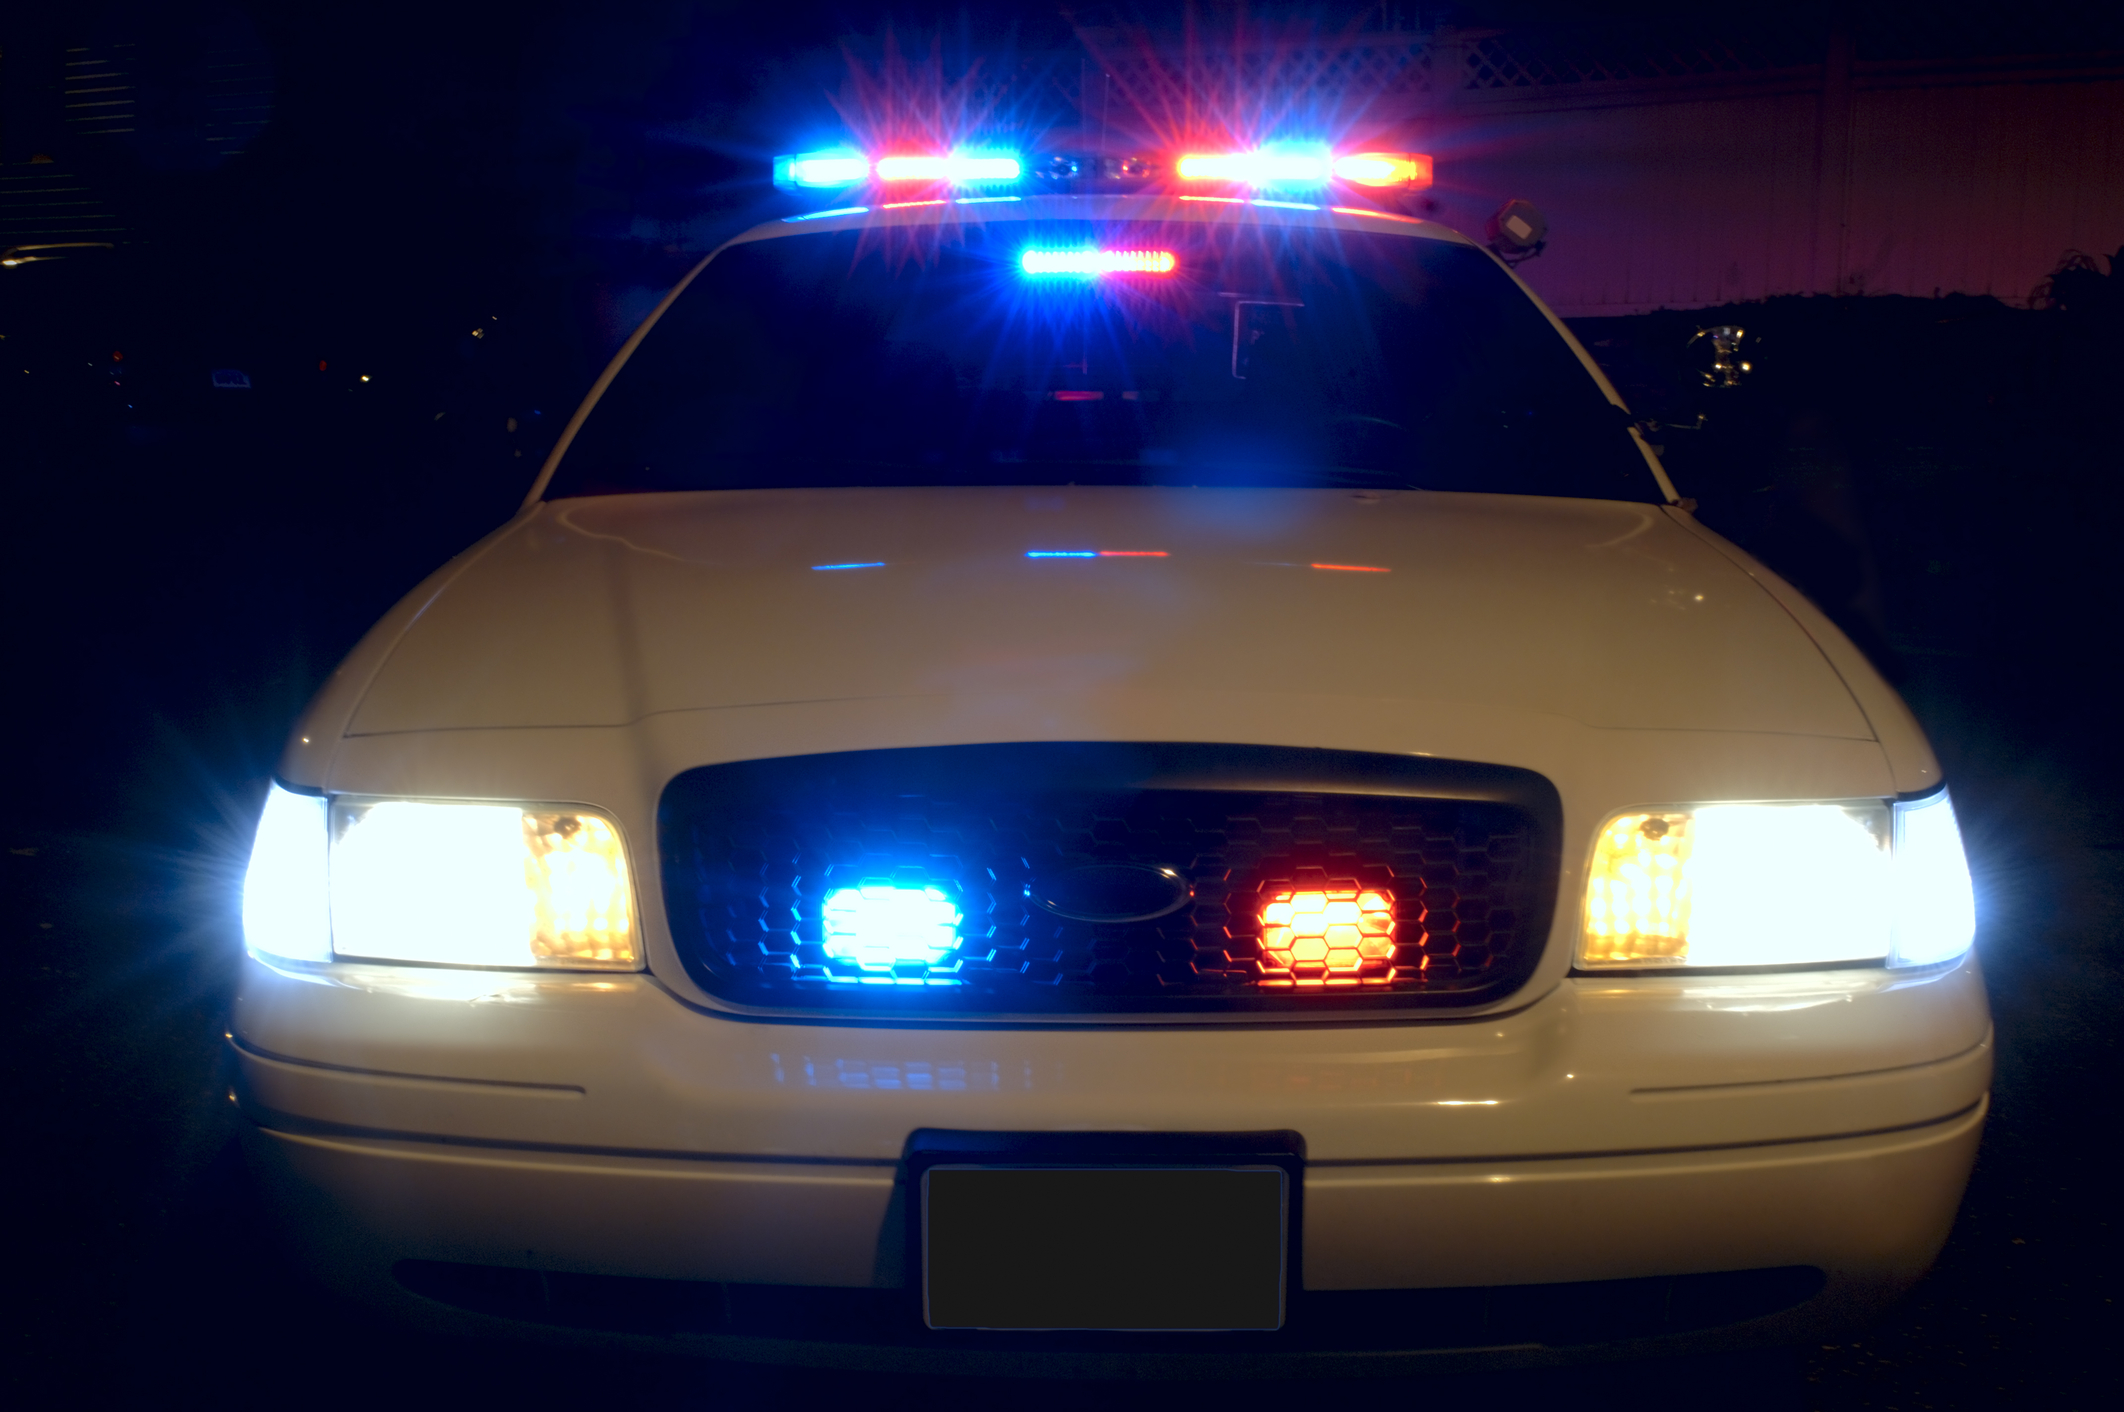 craigslist robberies prompt police warnings racine county eye racine police are warning residents to take precautions when answering ads on craigslist to buy cars